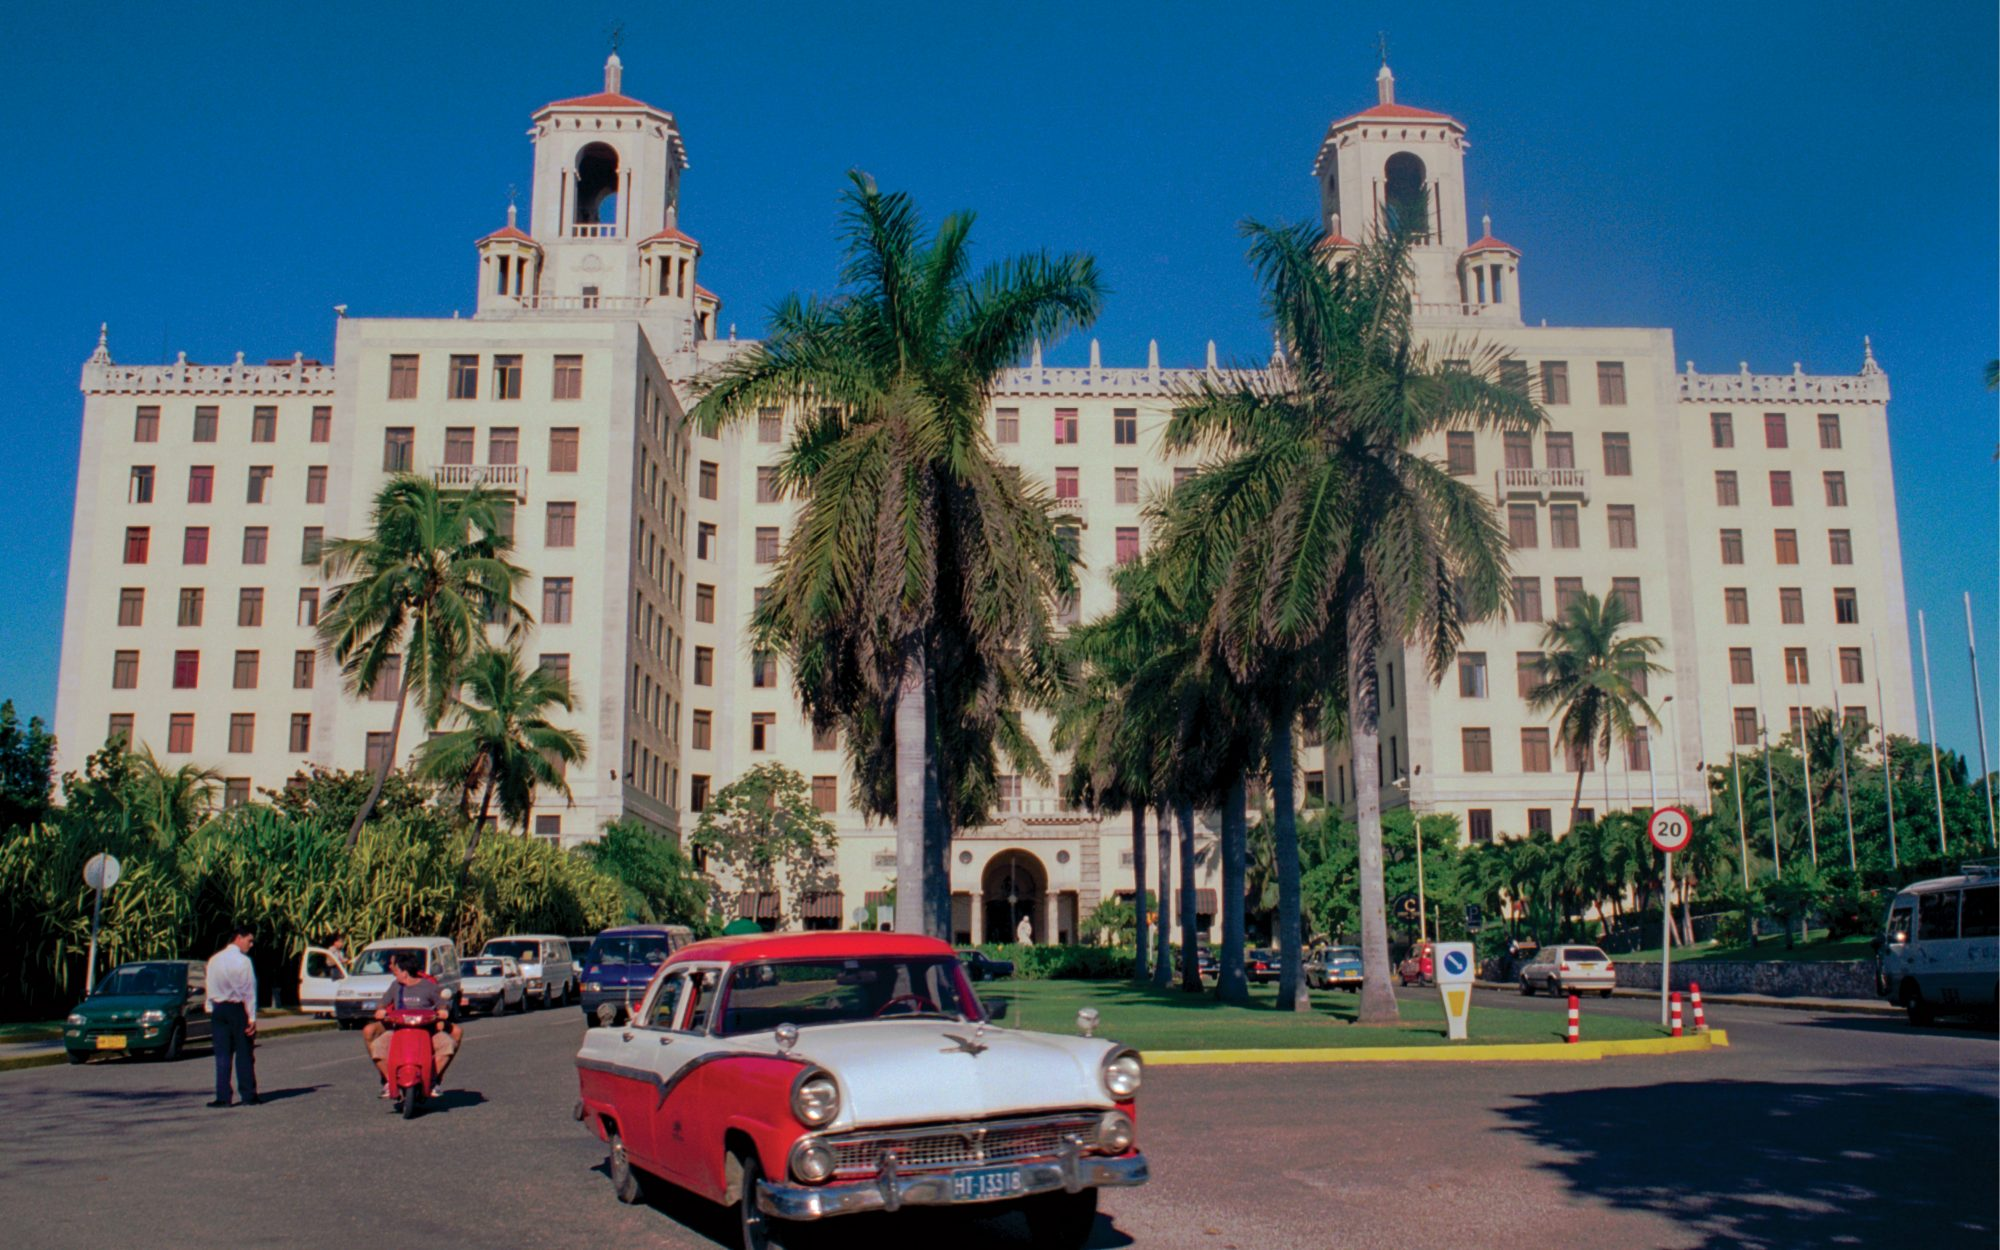 In Photos: Untouched Cuba